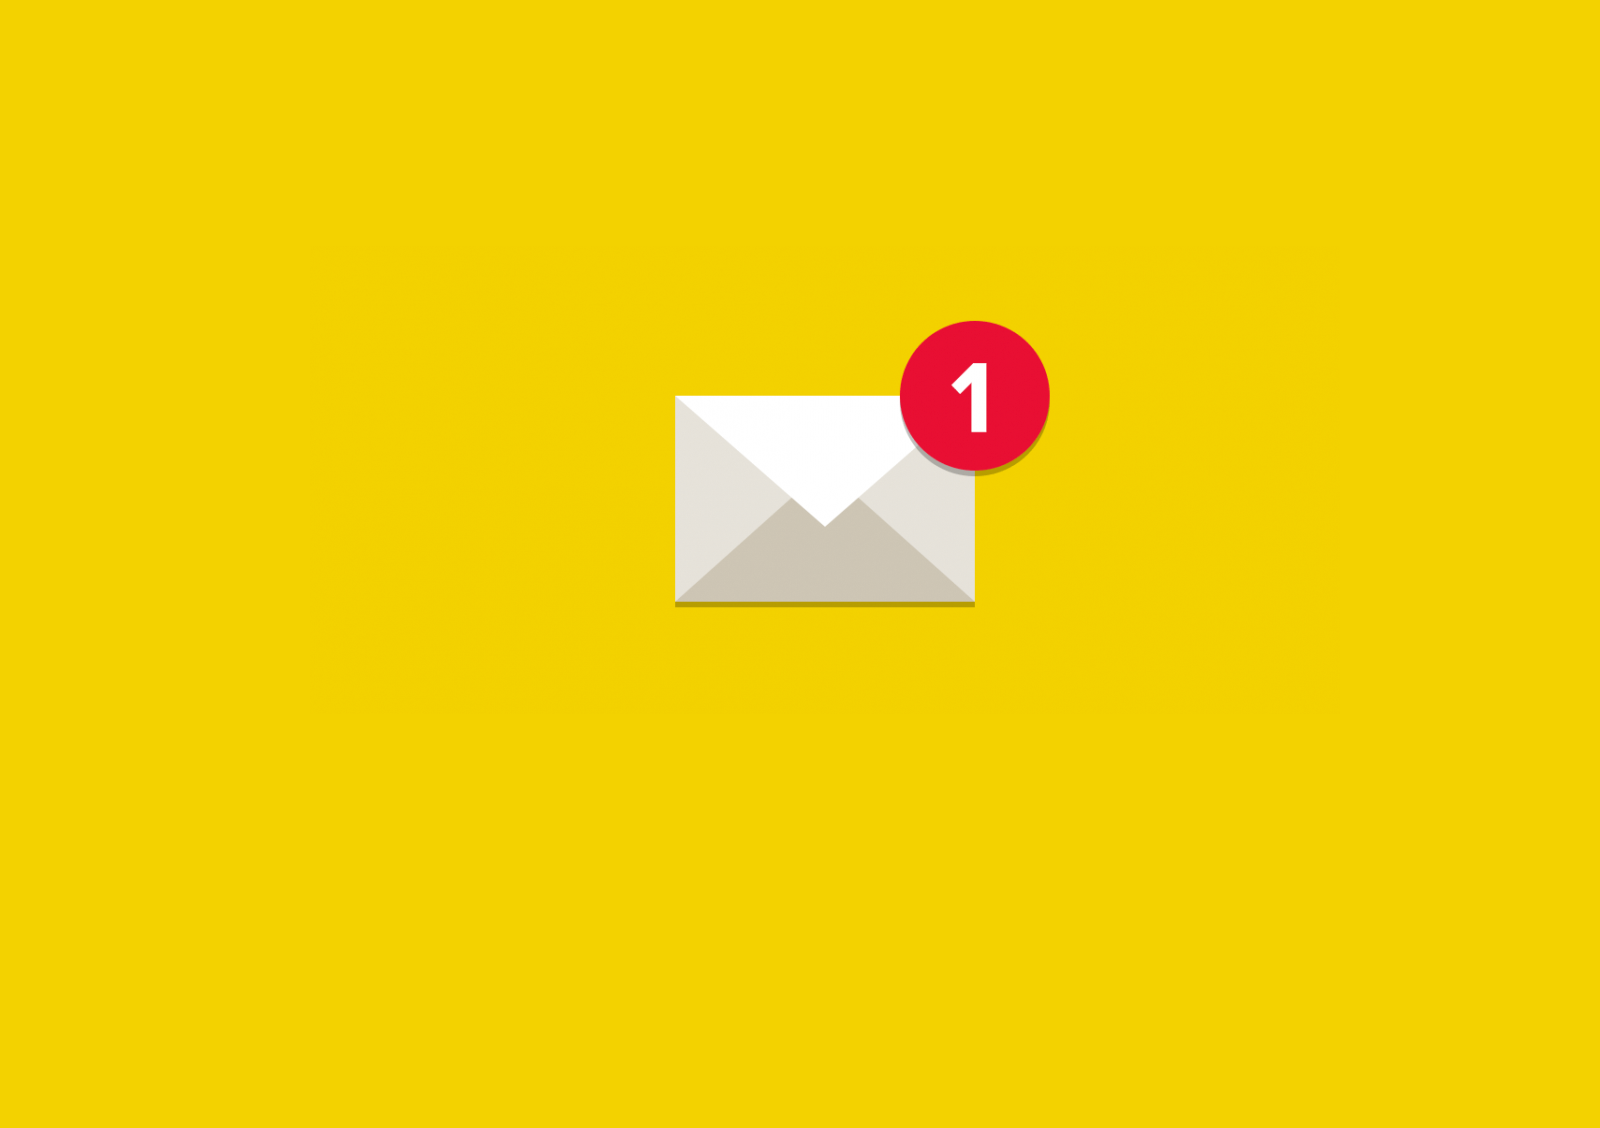 Trust is email marketing's most important metric